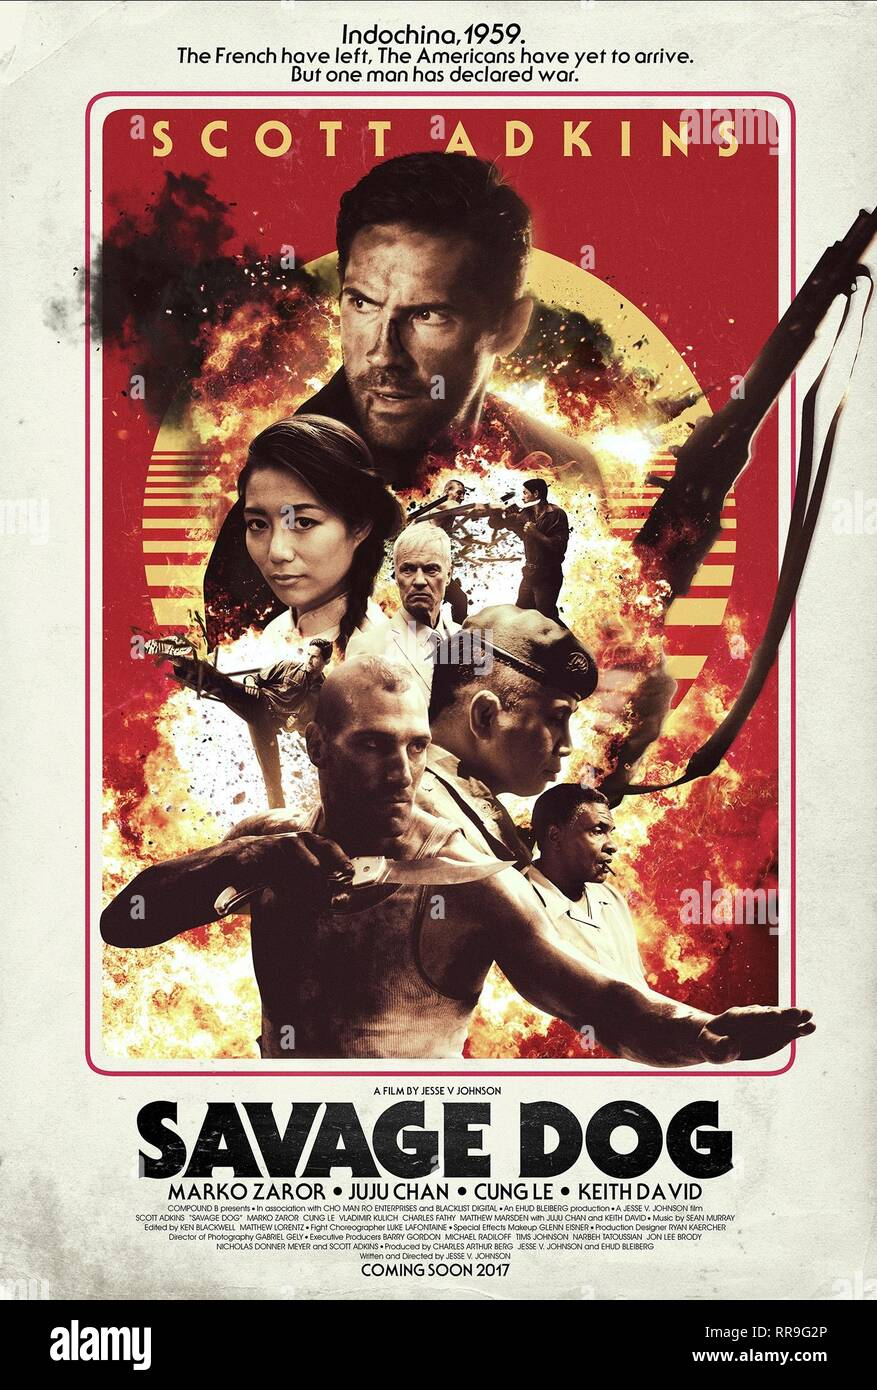 SAVAGE DOG, MOVIE POSTER, 2017 - Stock Image